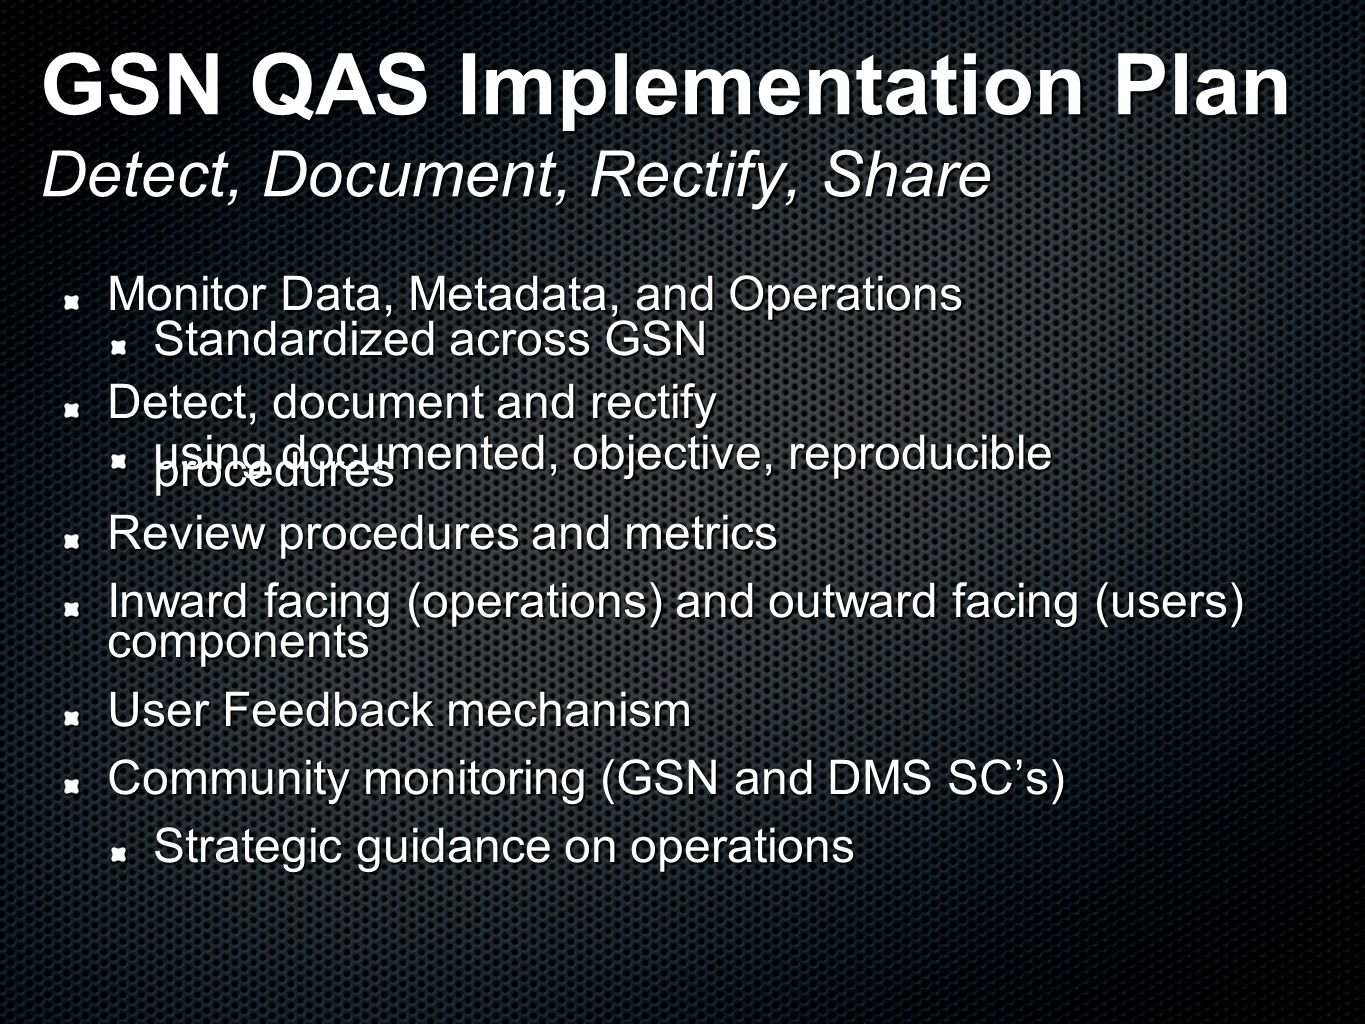 GSN QAS Implementation Plan Detect, Document, Rectify, Share Monitor Data, Metadata, and Operations Standardized across GSN Detect, document and rectify using documented, objective, reproducible procedures Review procedures and metrics Inward facing (operations) and outward facing (users) components User Feedback mechanism Community monitoring (GSN and DMS SC's) Strategic guidance on operations